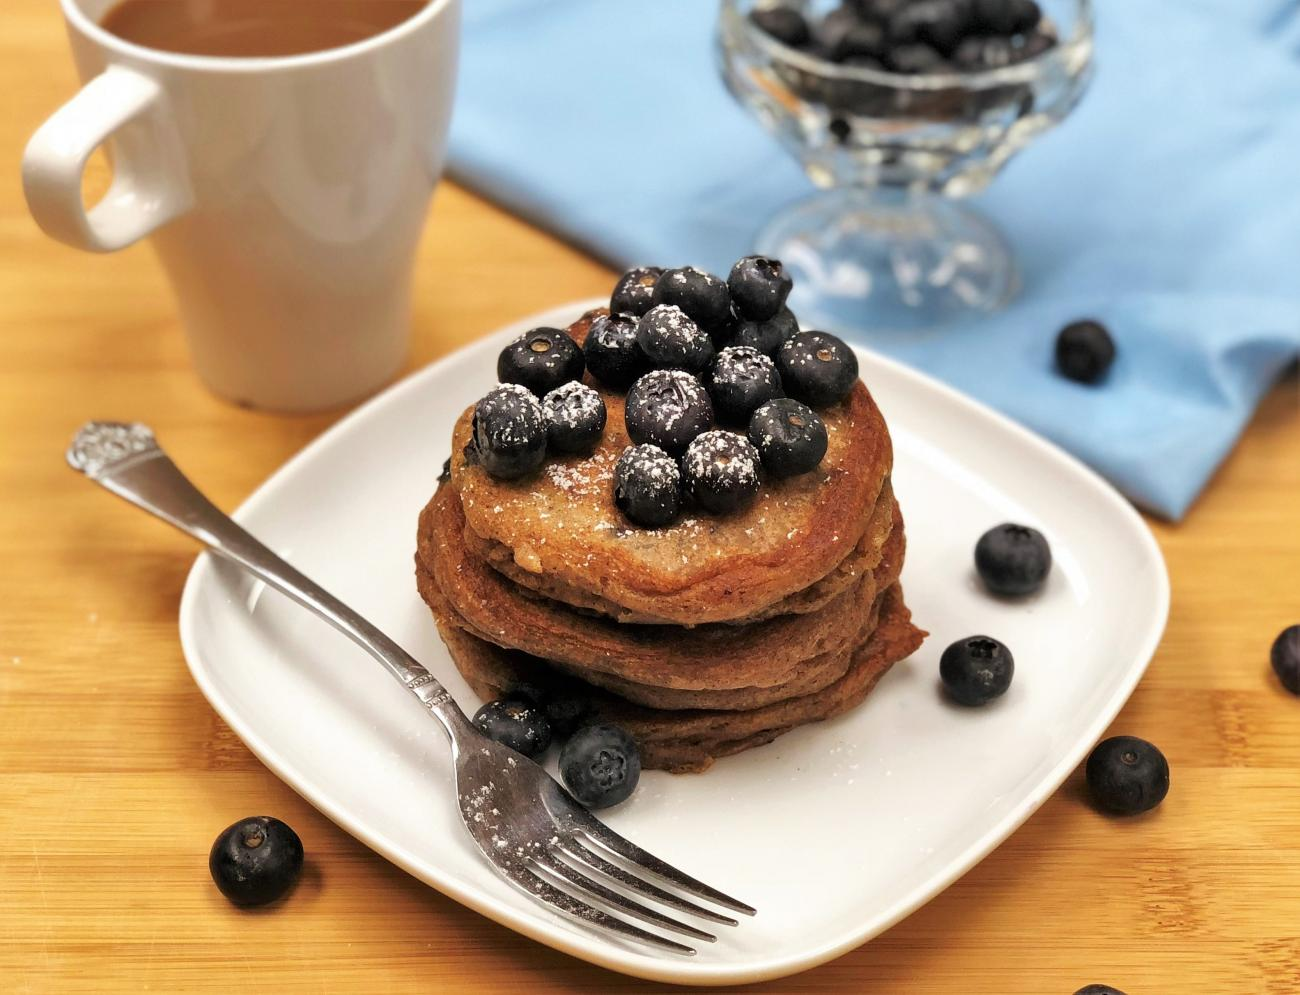 Recipe for Blueberry Sour Cream Pancakes